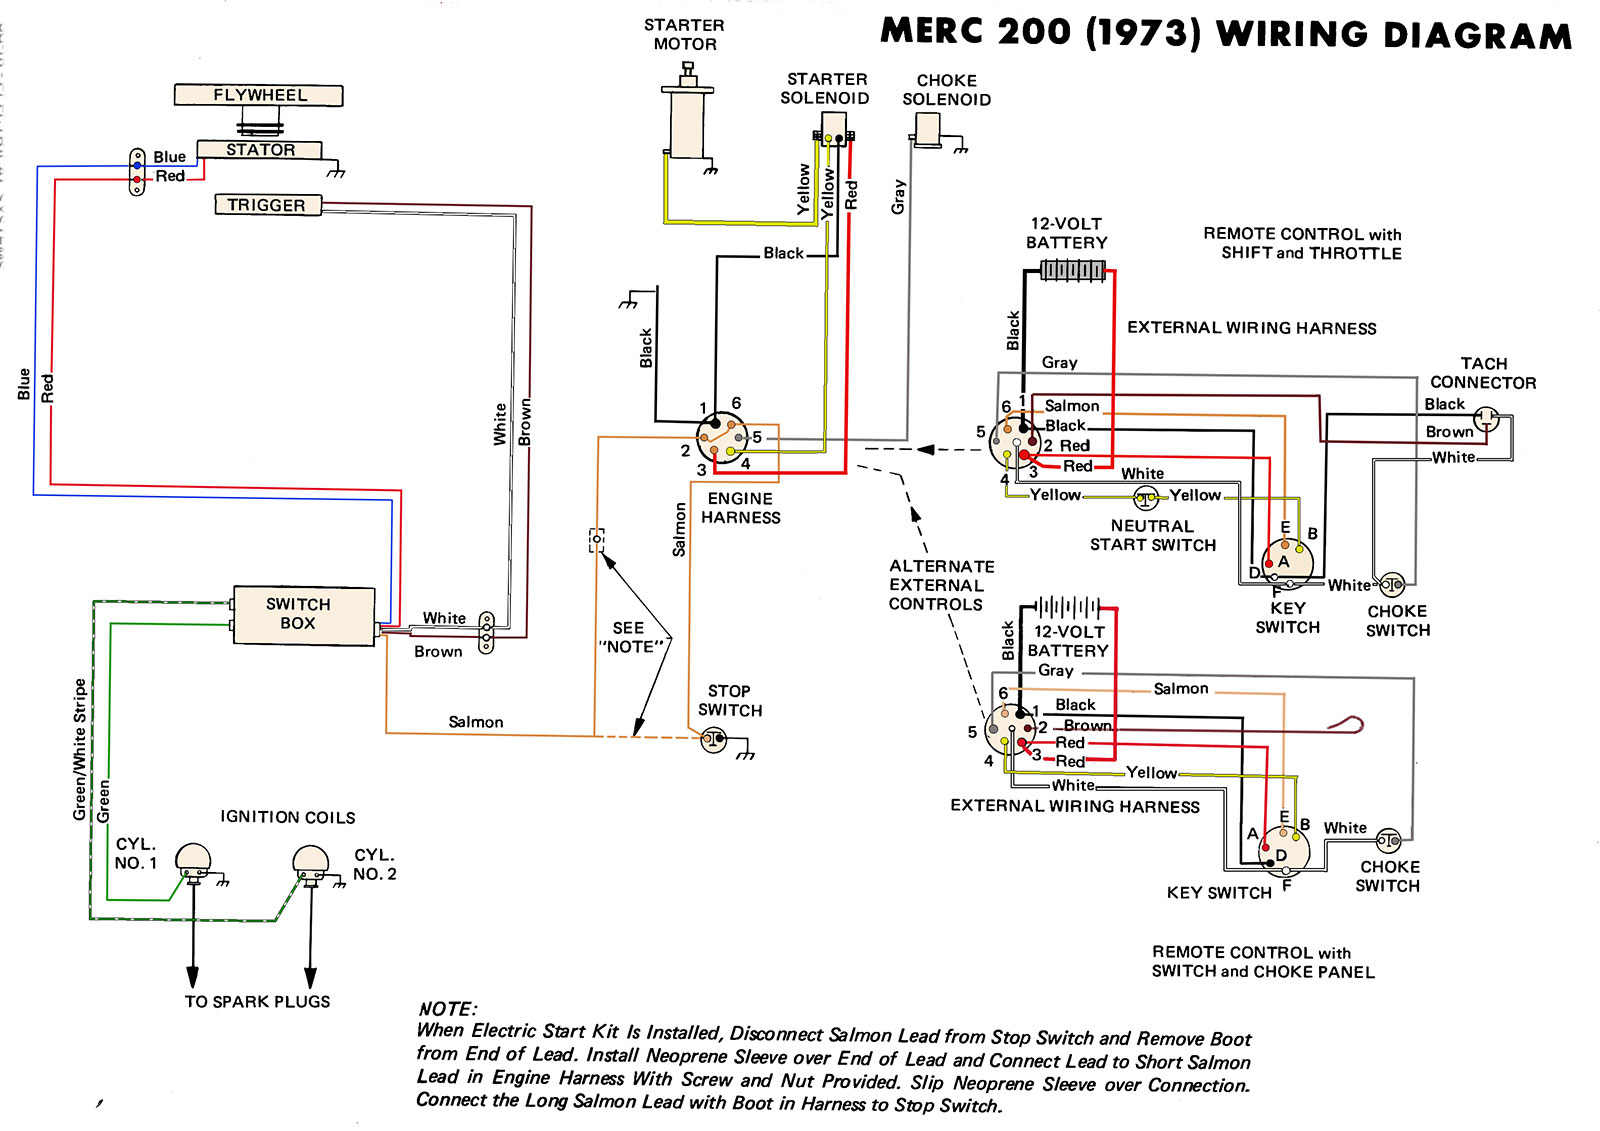 Mercury 500 Thunderbolt Marine Wiring - Wiring Diagram Mega on mercury outboard motor dimensions, mercury outboard motor kill switch, hp mercury outboard wiring diagram, mercury outboard serial number chart, 70 hp johnson outboard wiring diagram, mercury outboard charging wiring diagram, mercury mark 35a outboard motor, 50 hp johnson outboard wiring diagram, mercury outboard parts diagram, 1978 mercury outboard wiring diagram, mercury outboard schematics, mercury 50 hp outboard, 90 mercury outboard wiring diagram, suzuki outboard motor wiring diagram, mercury outboard wiring harness, mercury 150 wiring diagram, tohatsu outboard wiring diagram, 90 hp mercury outboard diagram, 50 horsepower mercury outboard diagram, mercury ignition switch wiring diagram,